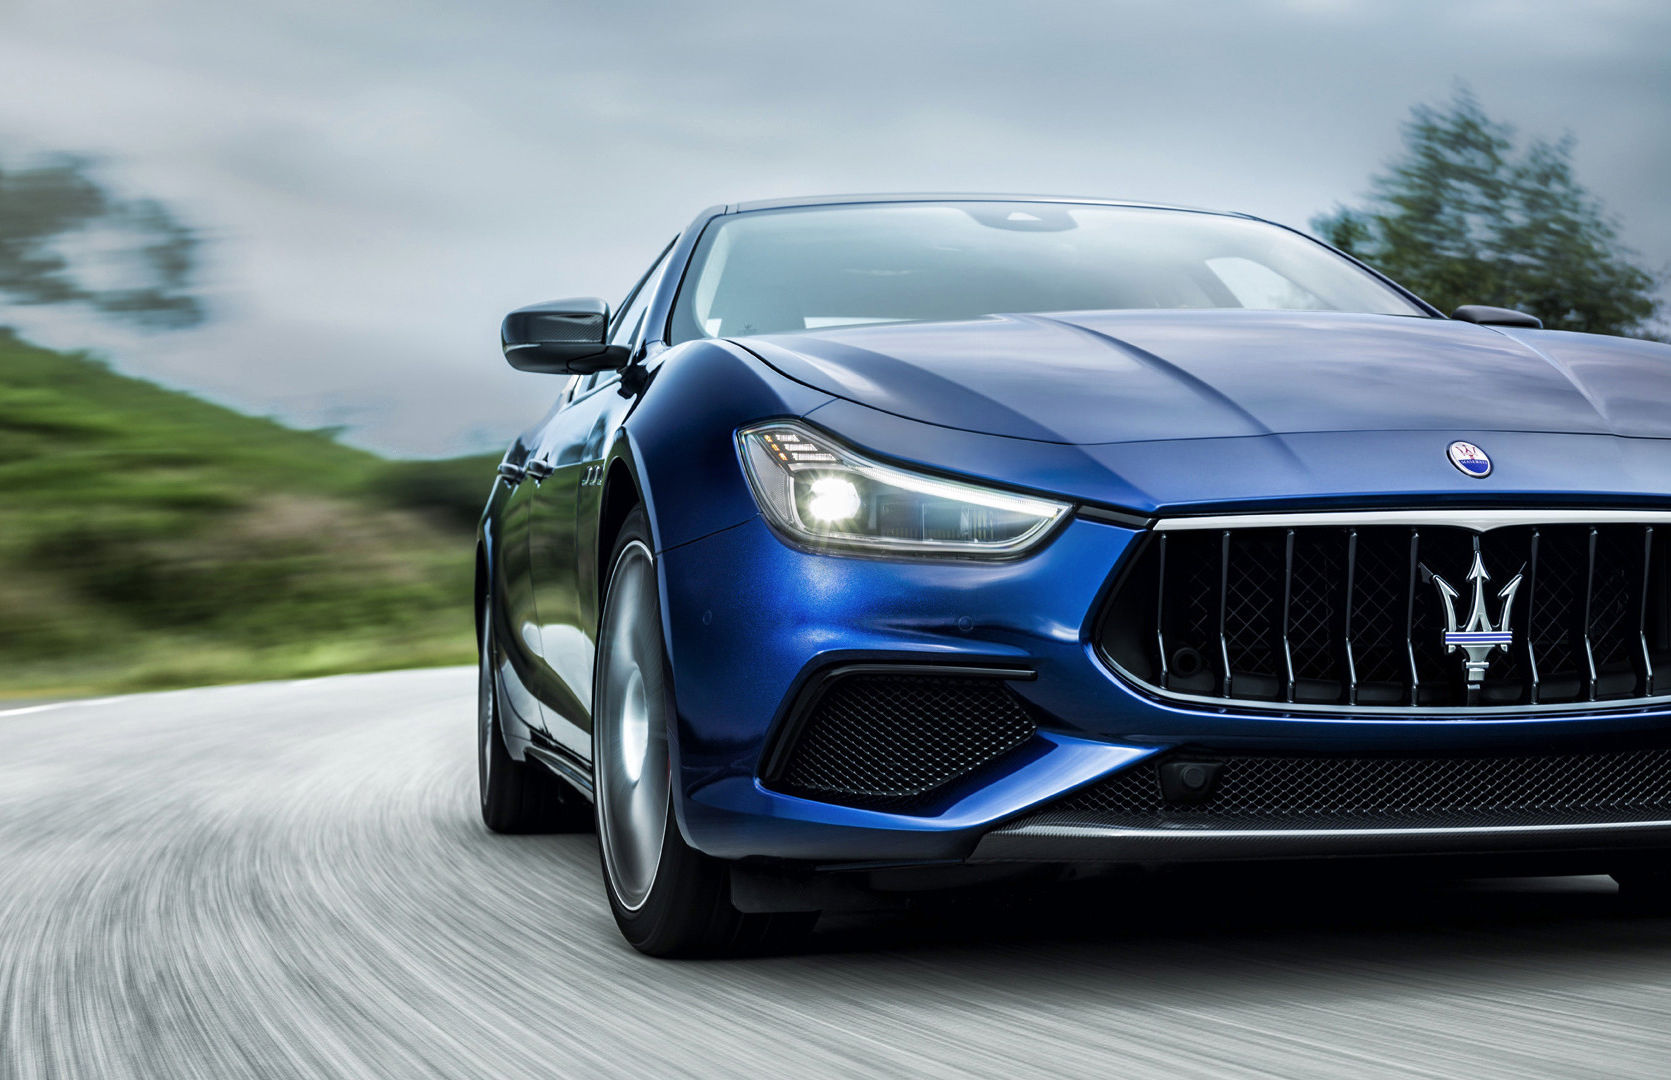 Maserati Ghibli GranSport - front view and lights, blue version